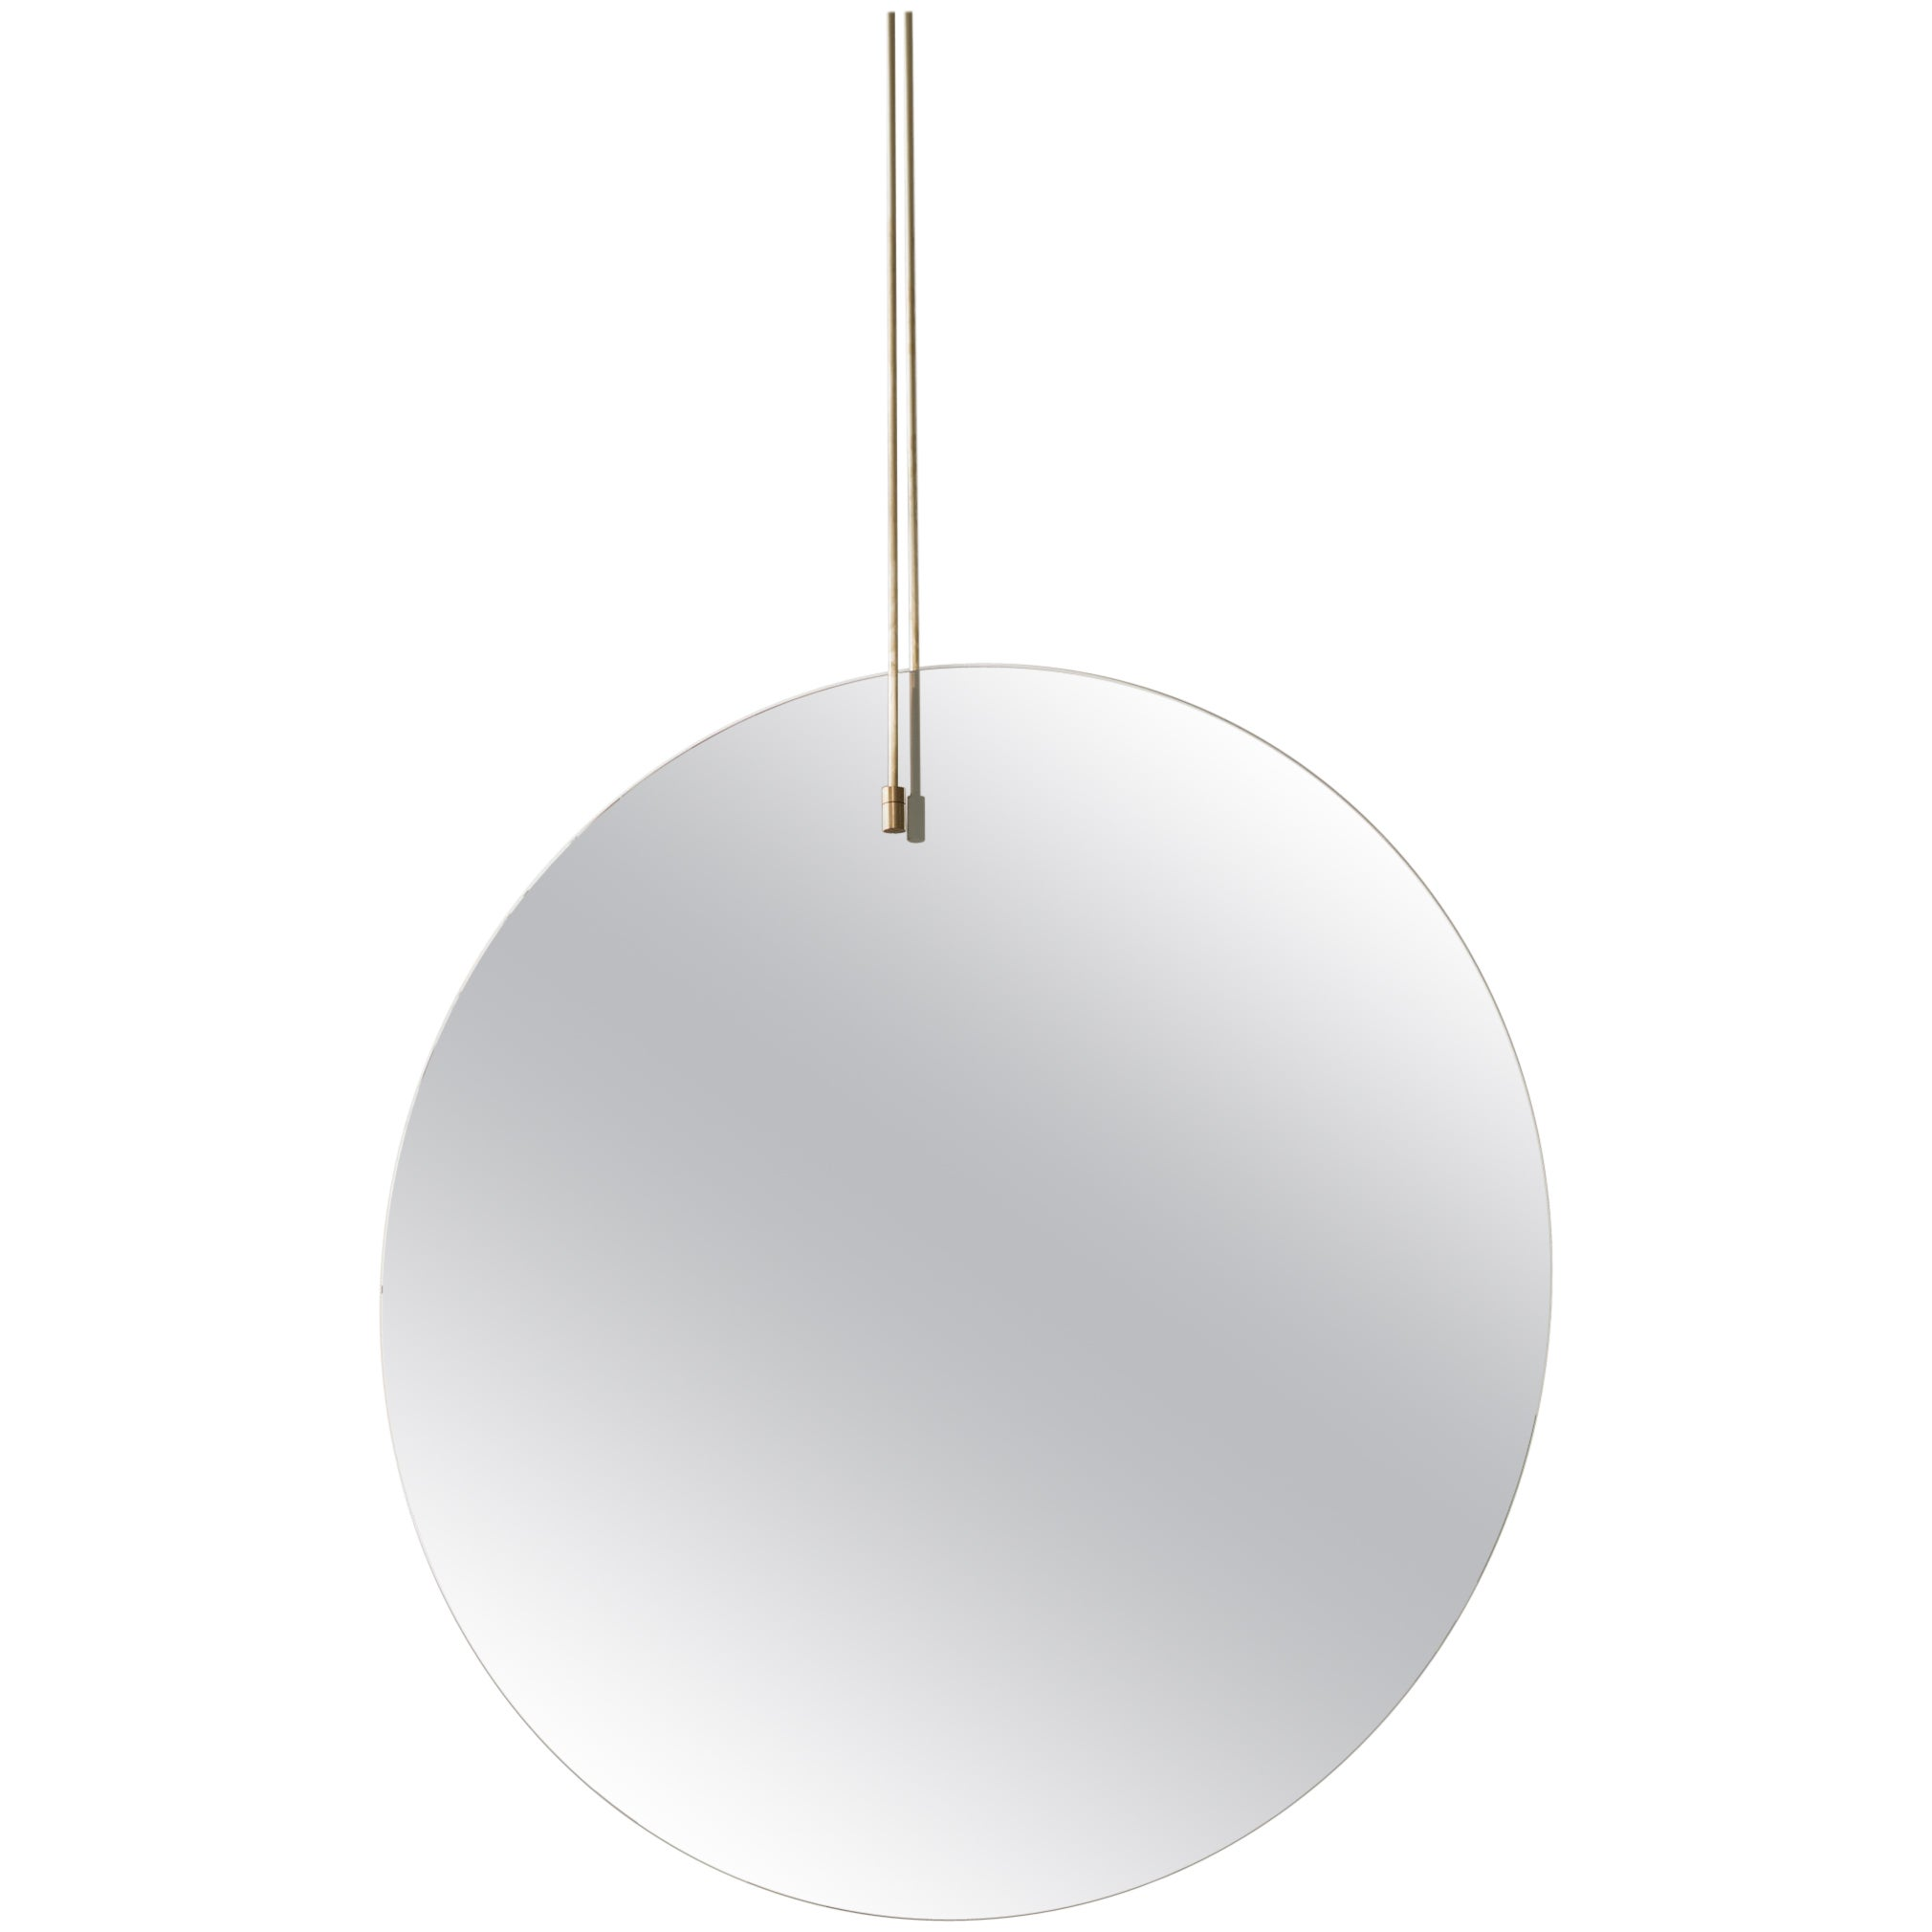 Passage Mirror, a Circular Mirror Made of One-way Mirror and Brushed Brass